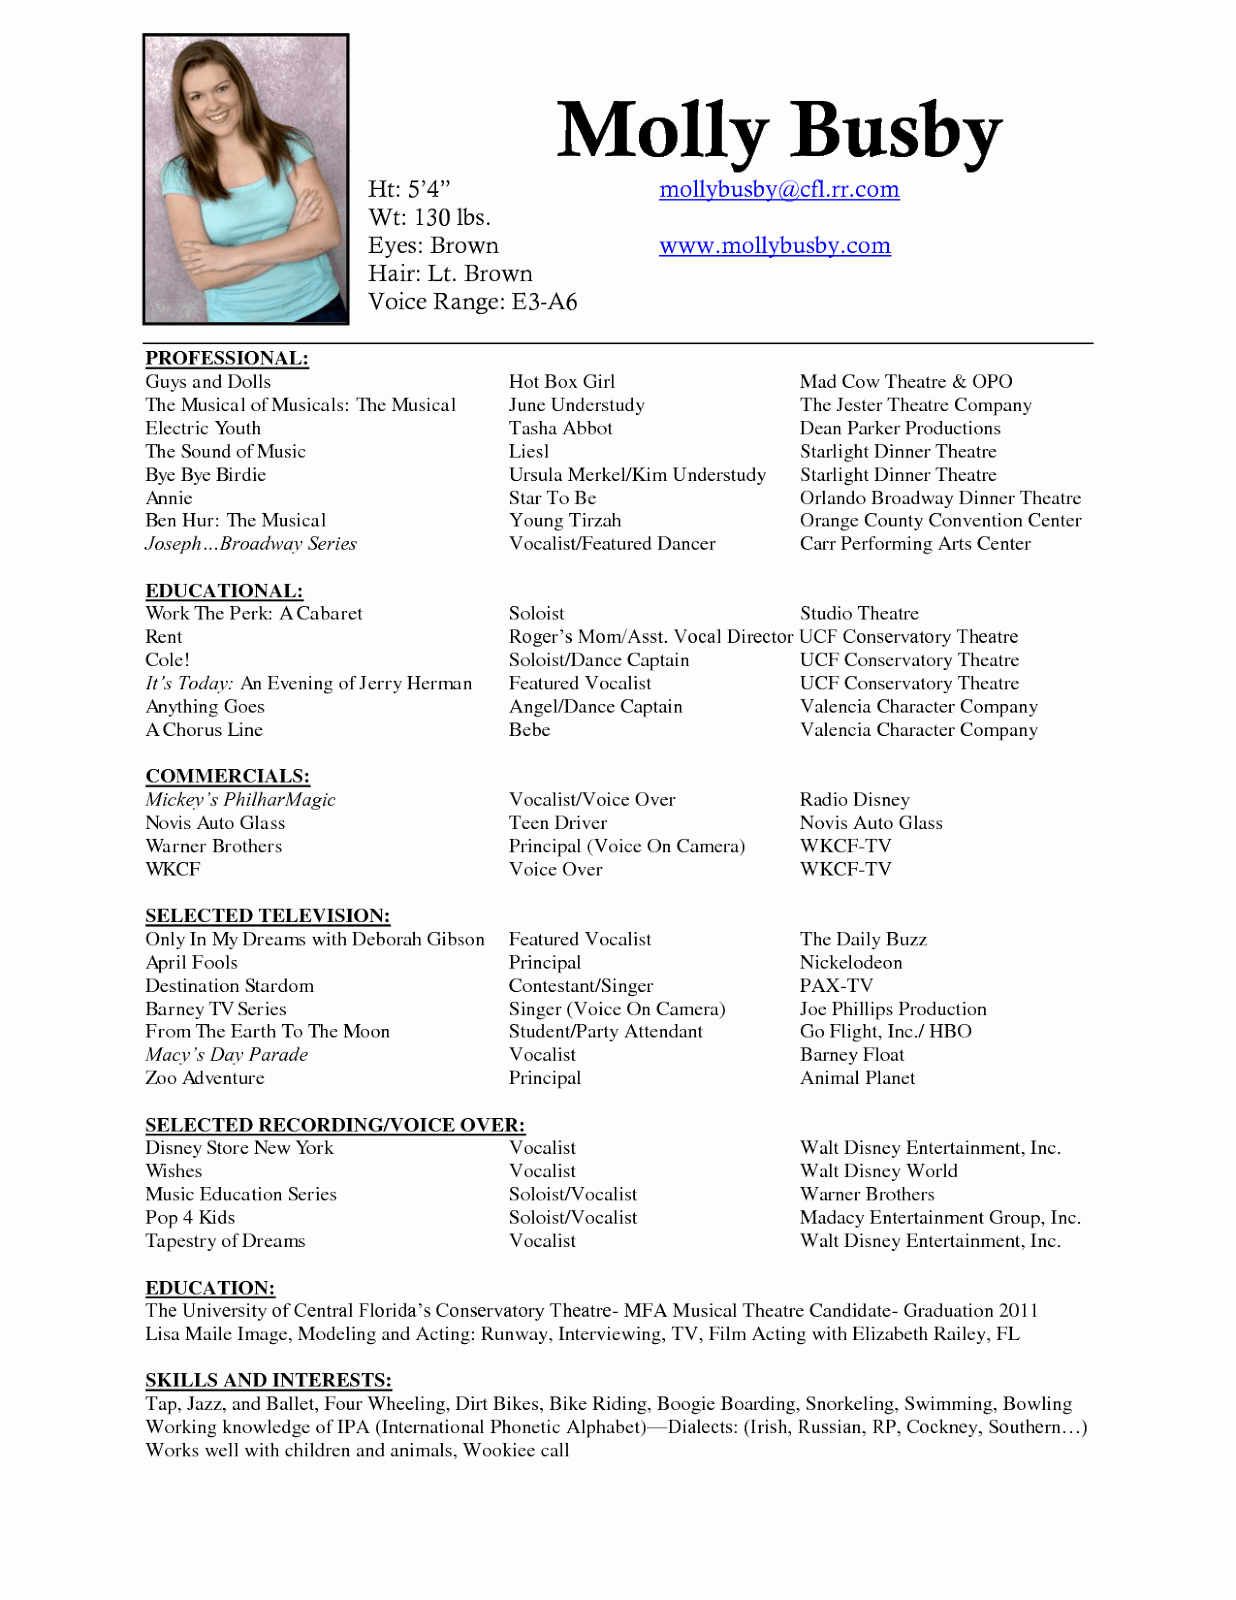 Performing Arts Resume Template New Inspiration Performing Arts Resume Samples In Dj Resume